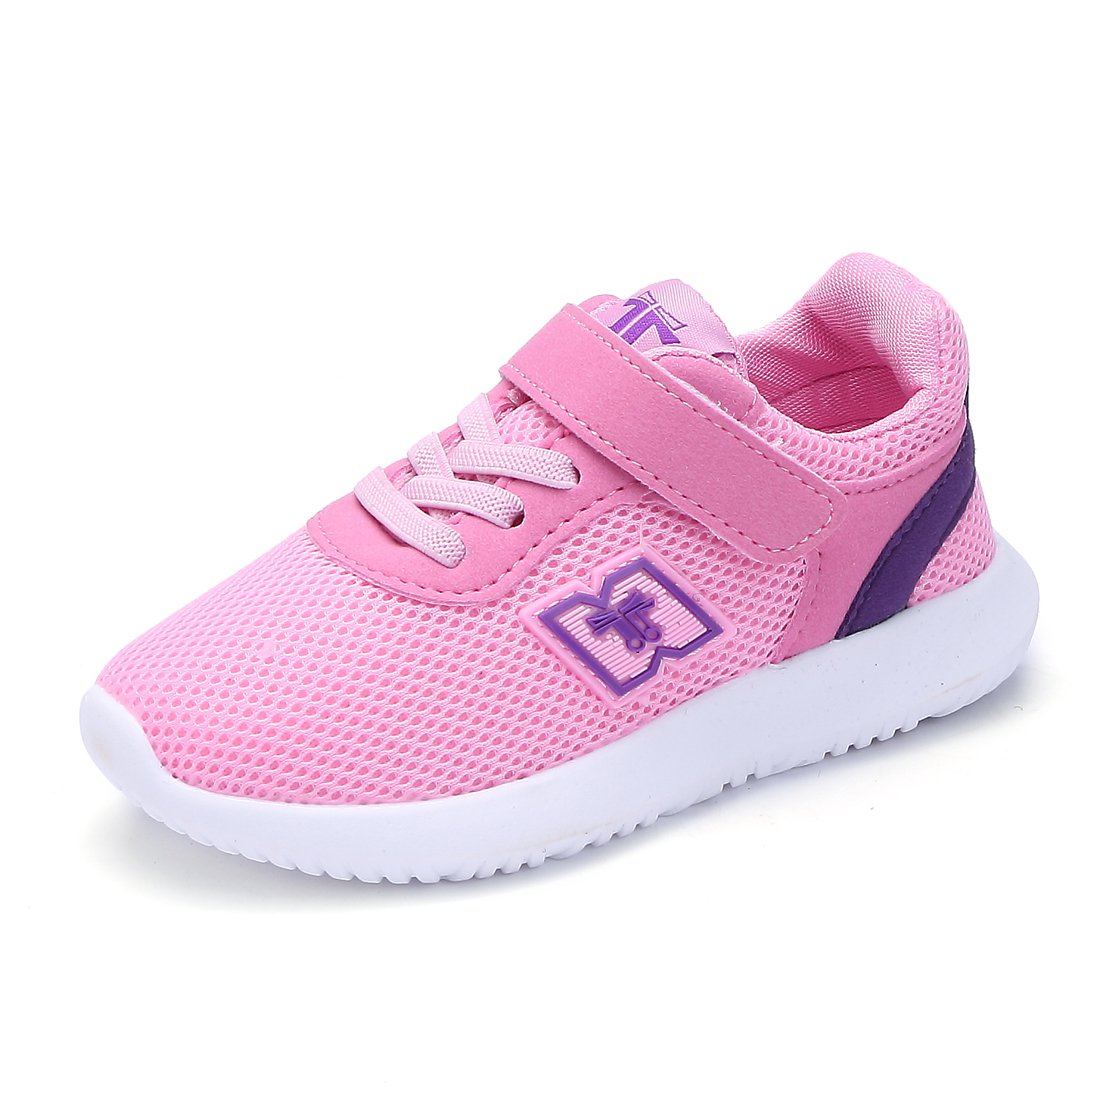 BTDREAM Boy and Girl's Breathable Fashion Sneakers Athletic Outdoor Sports Running Shoes Pink Size 26